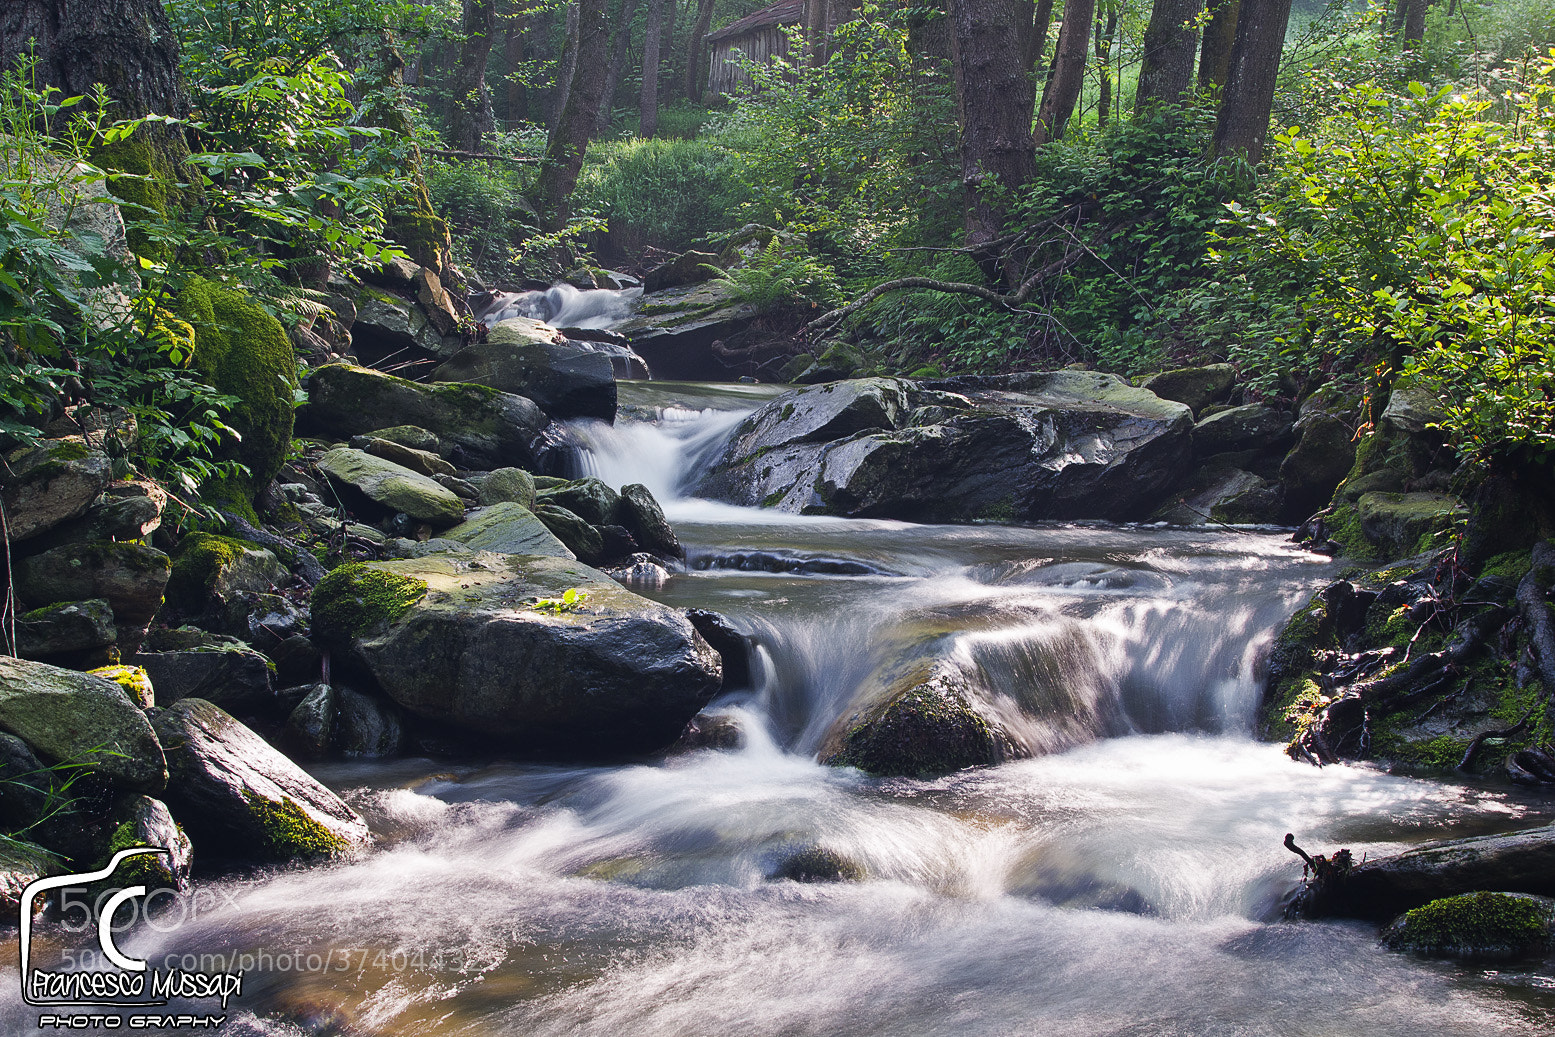 Photograph River in the green 5 by Francesco Mussapi on 500px